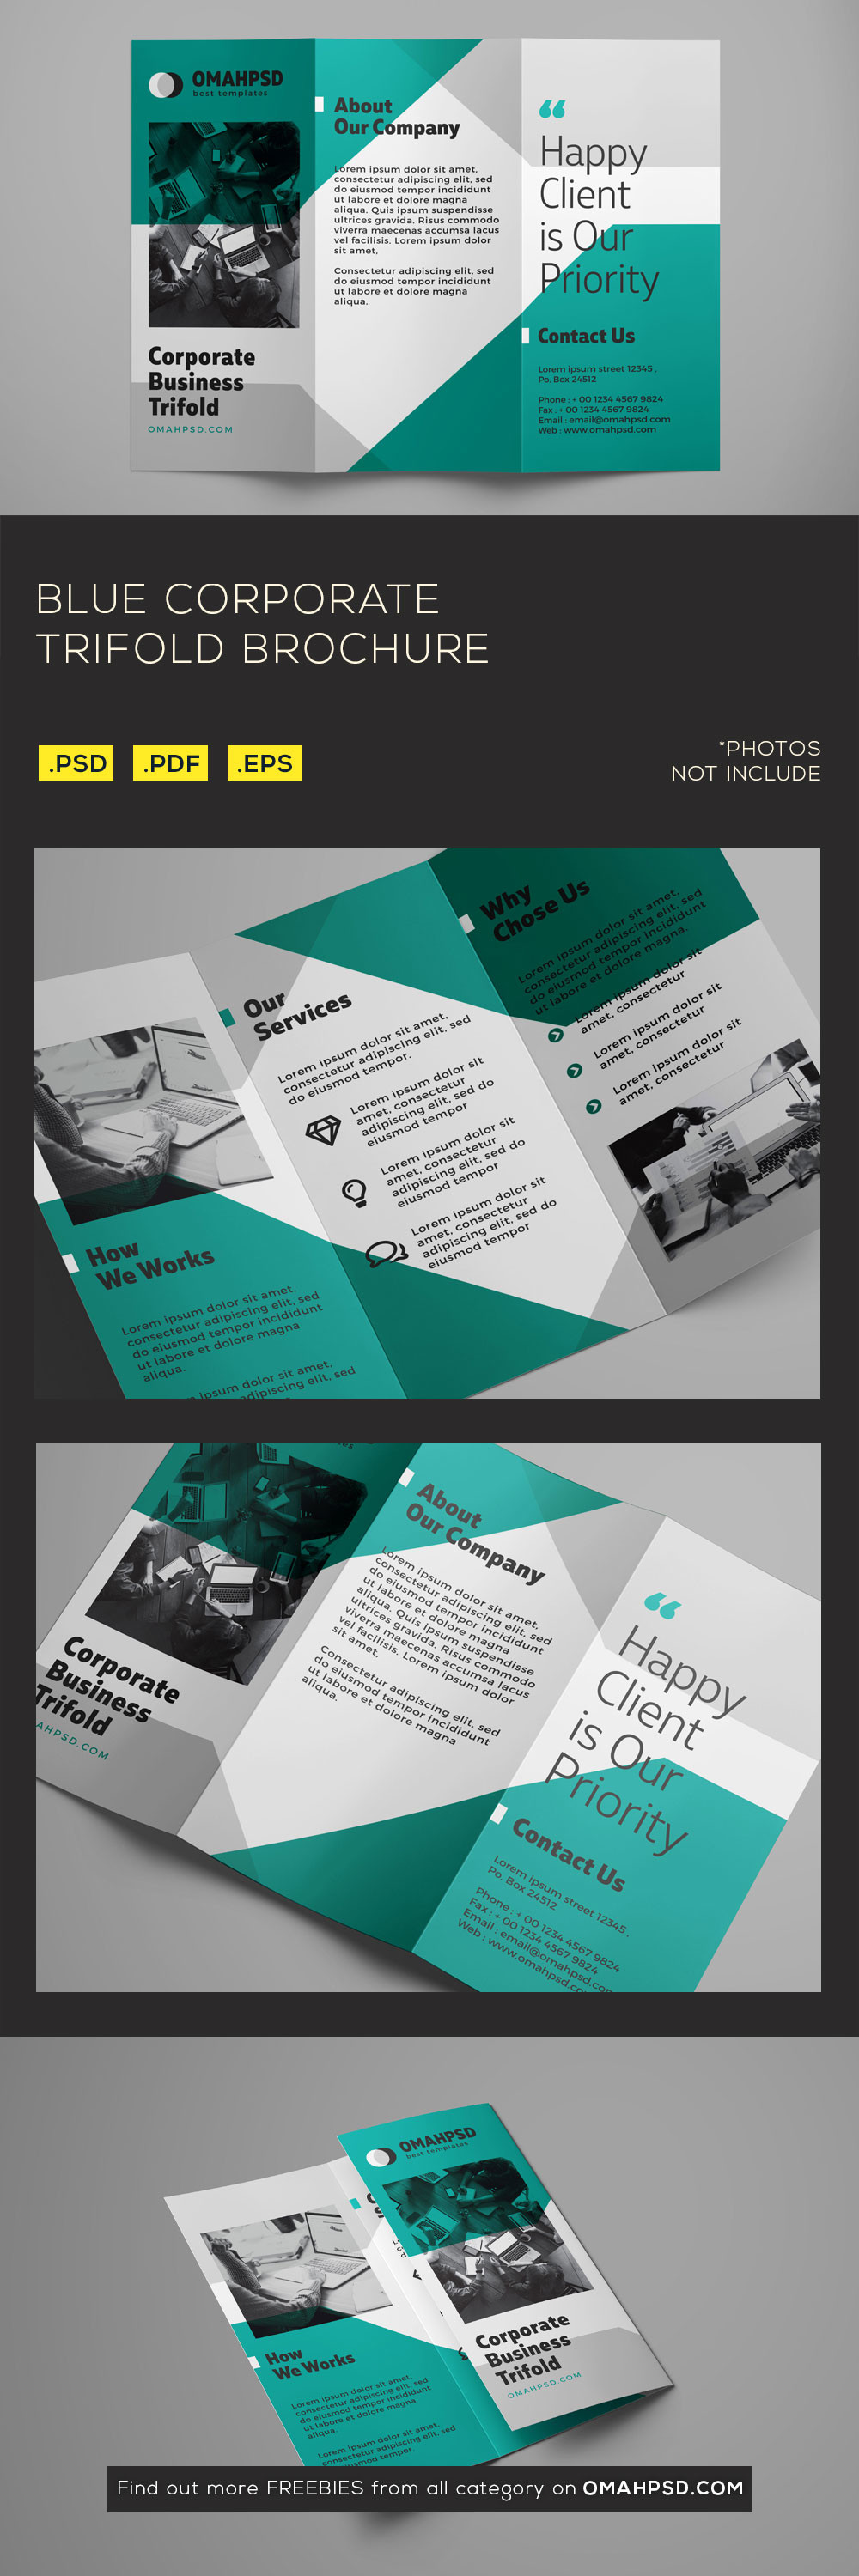 Free Blue Corporate Trifold Brochure Template - Preview